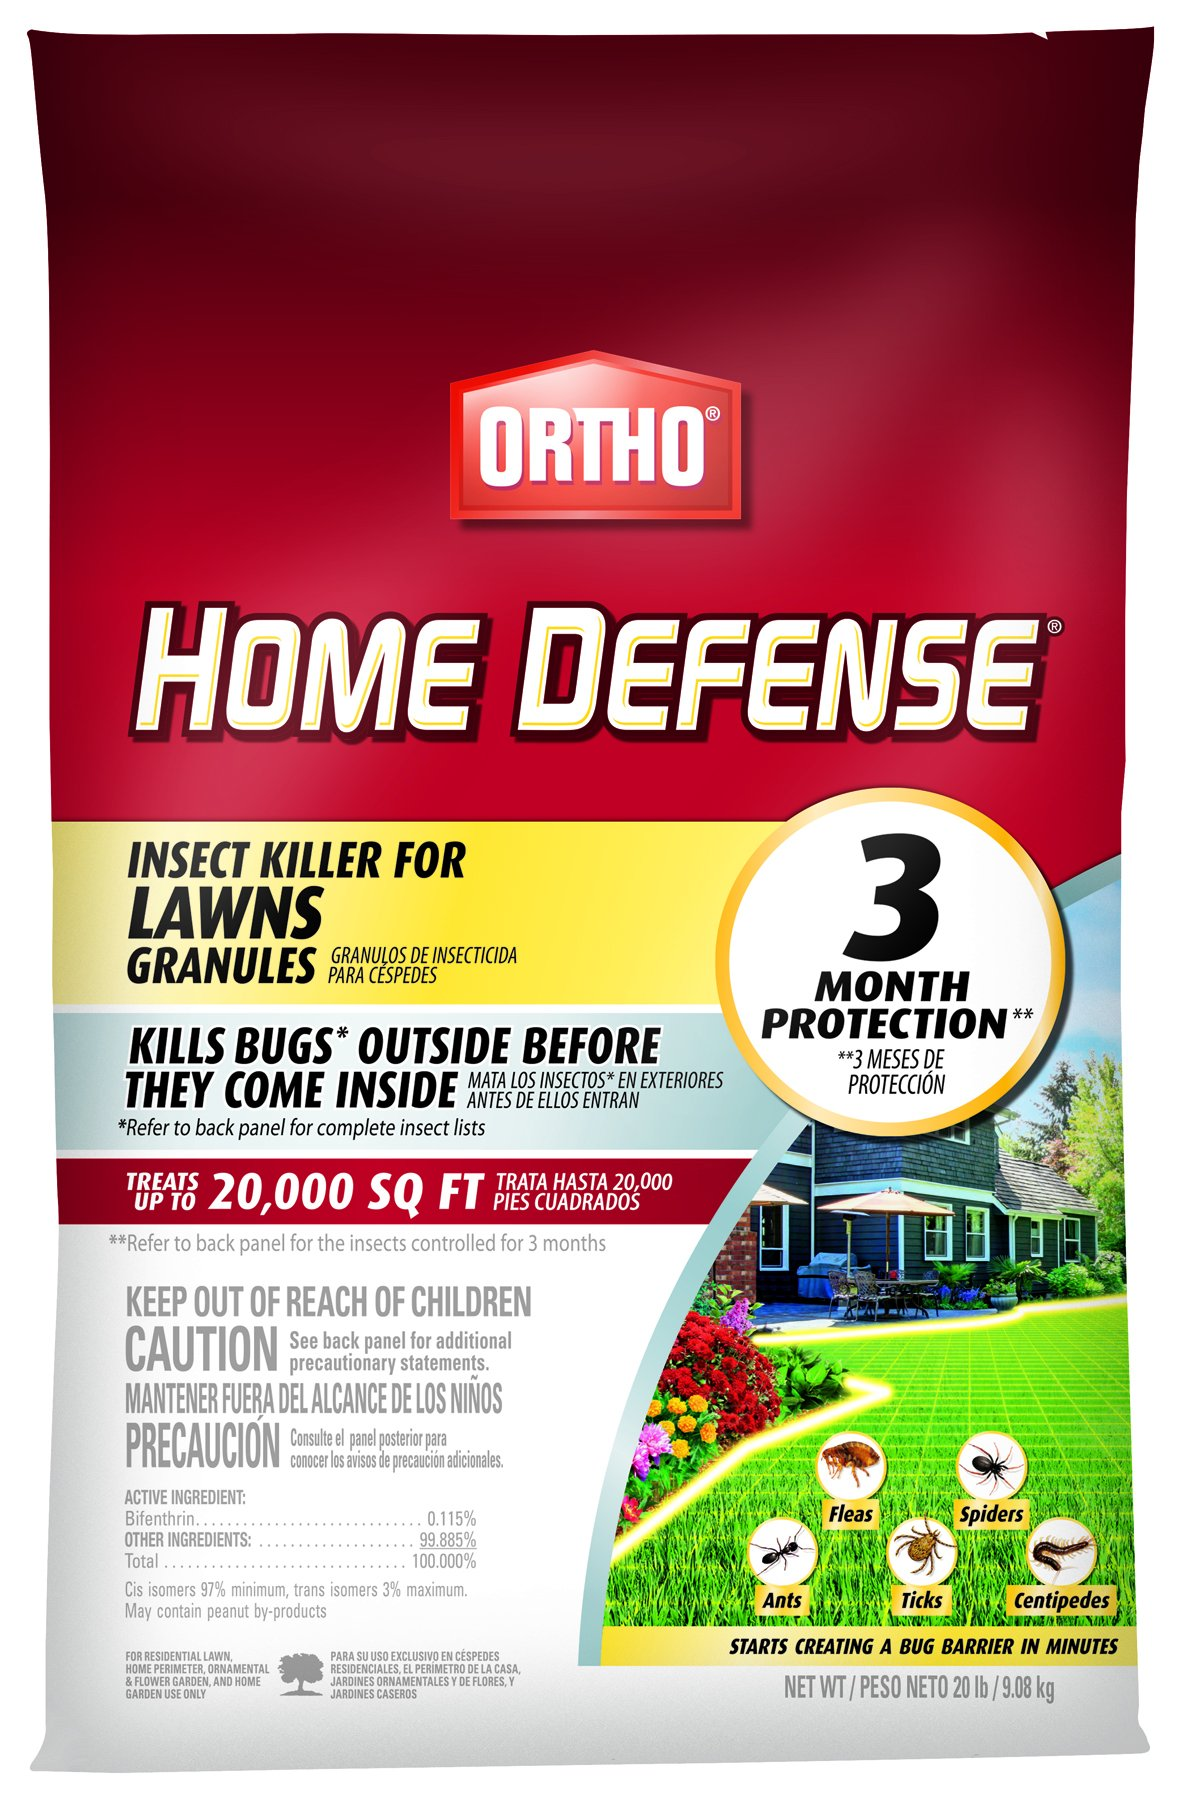 Ortho 0167210 Home Defense Lawns Granule Insect Killer, 20 LB (Old) by Ortho